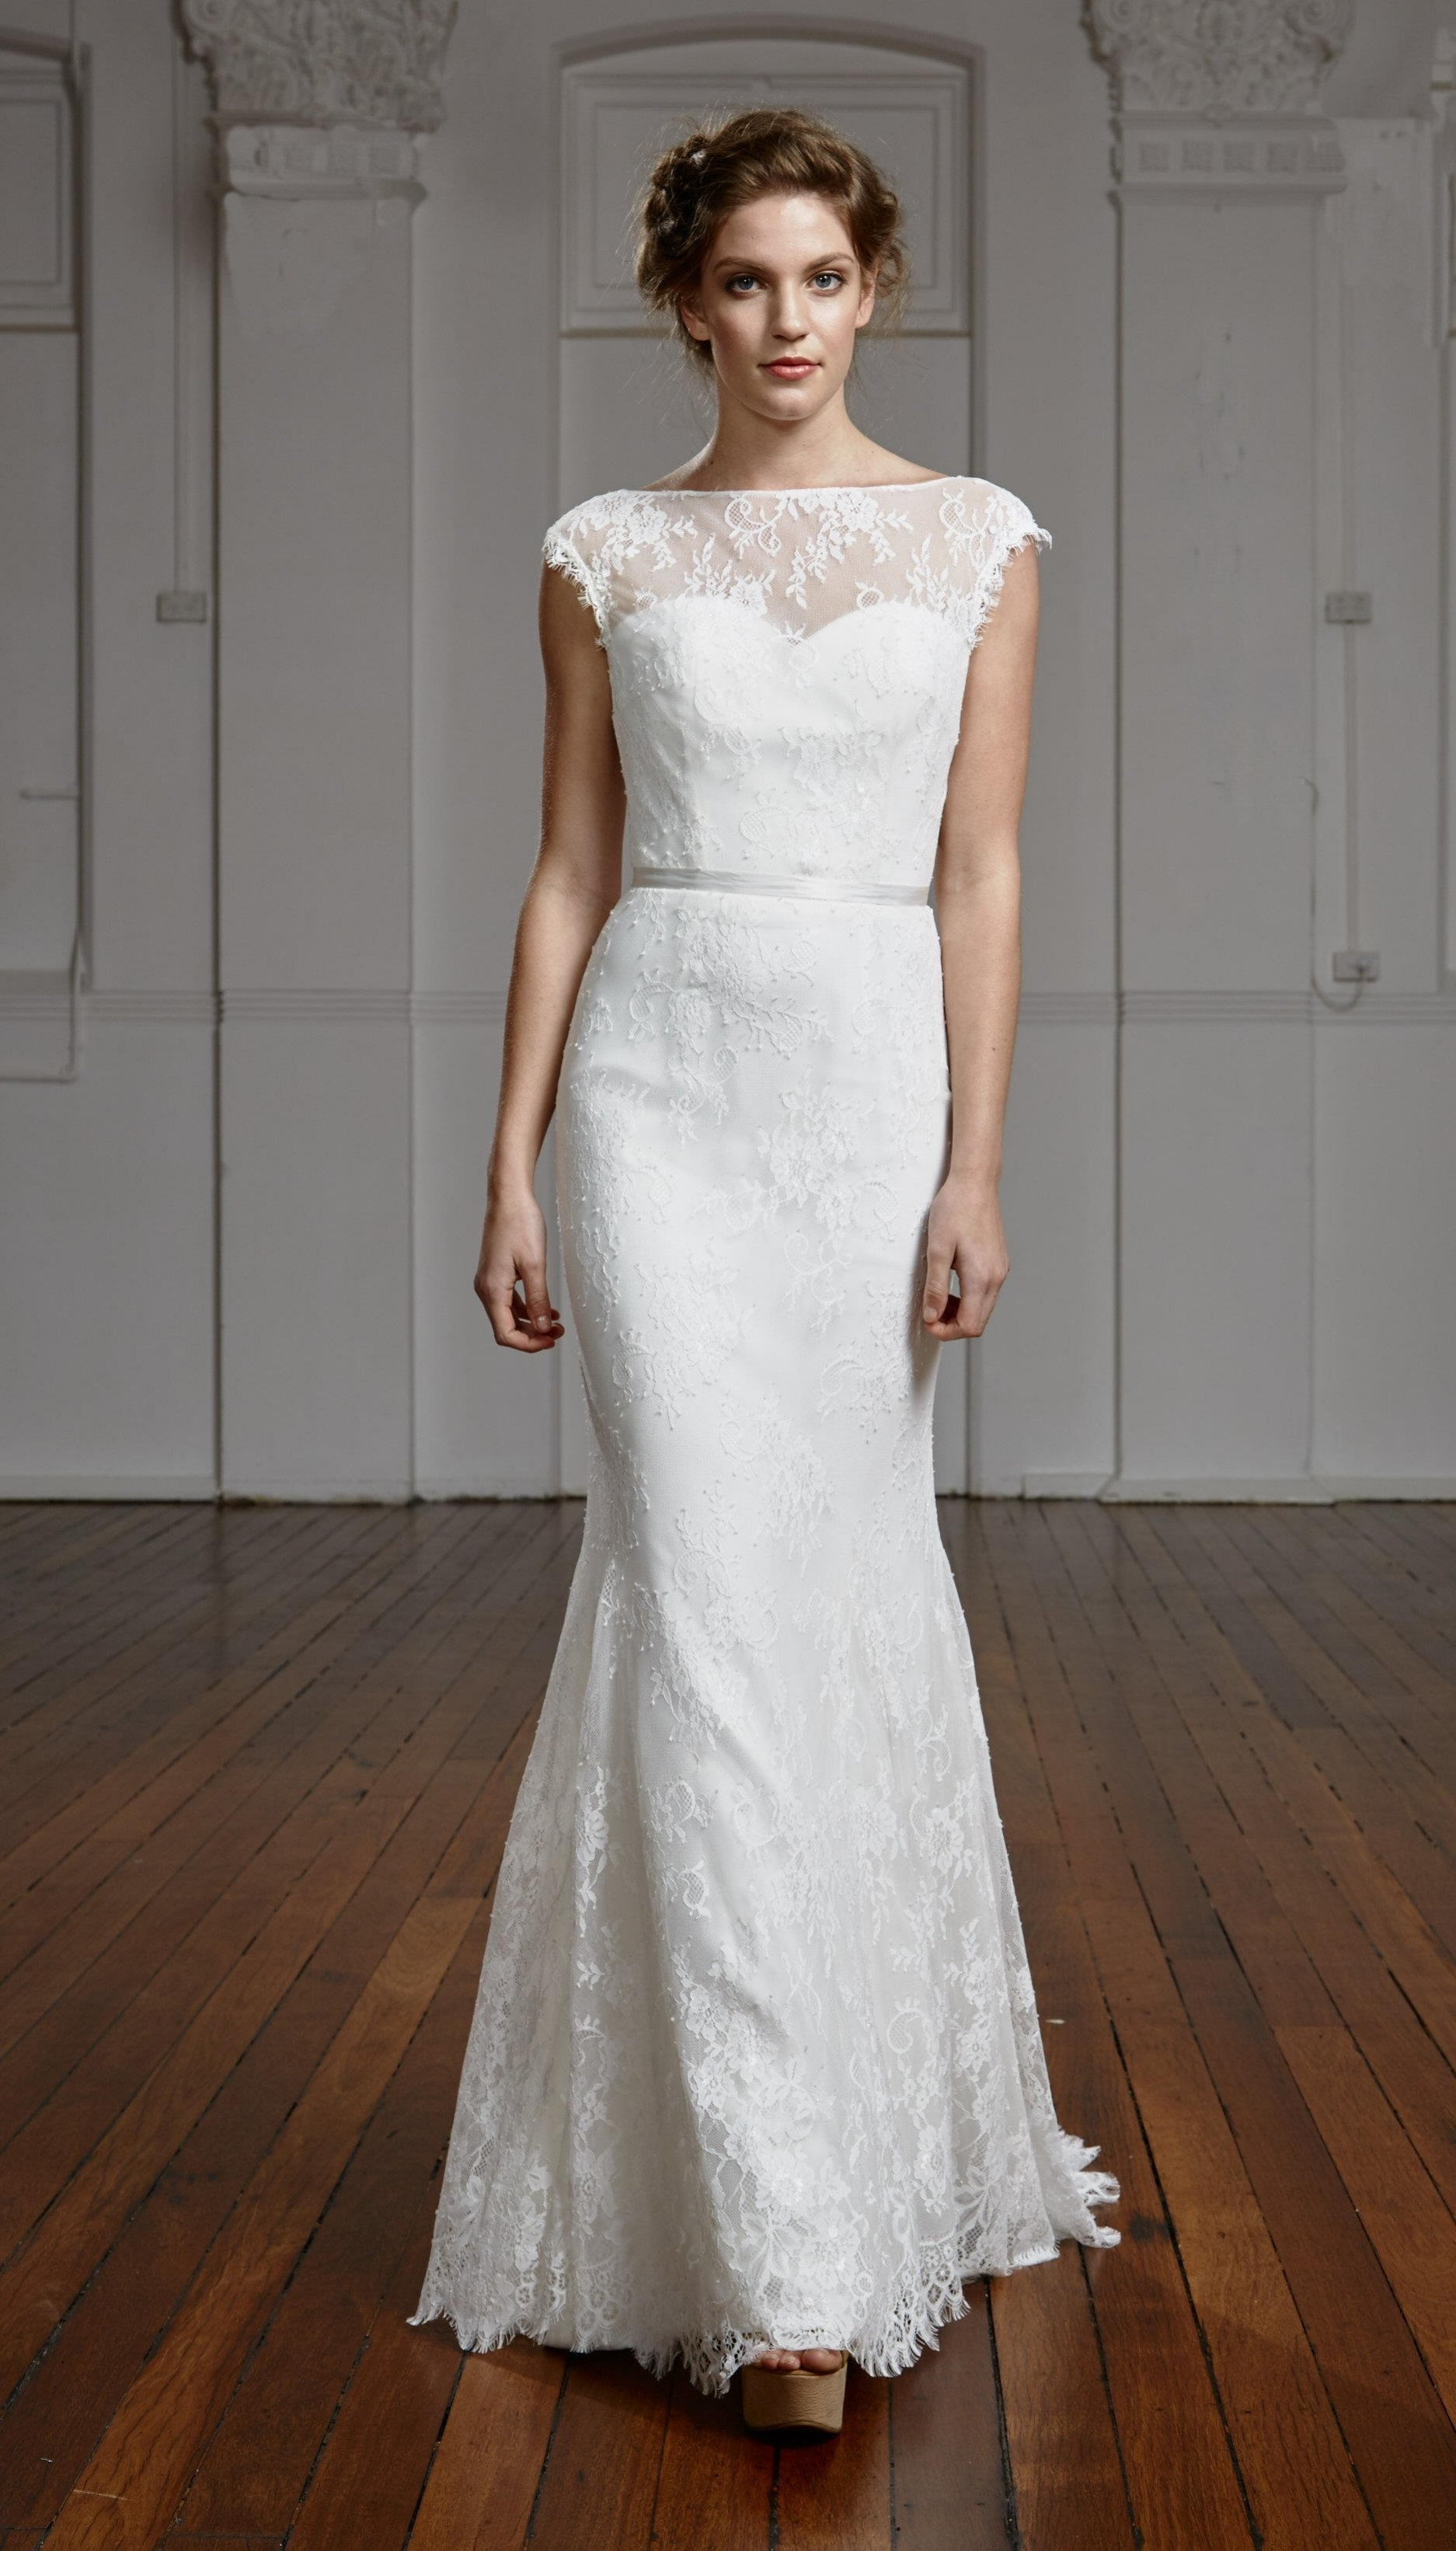 Delphina bridal gown Tanya Anic Photography Grant Sparkes-Carroll Makeup Liv Lundelius Accessories Purdy in Bloom